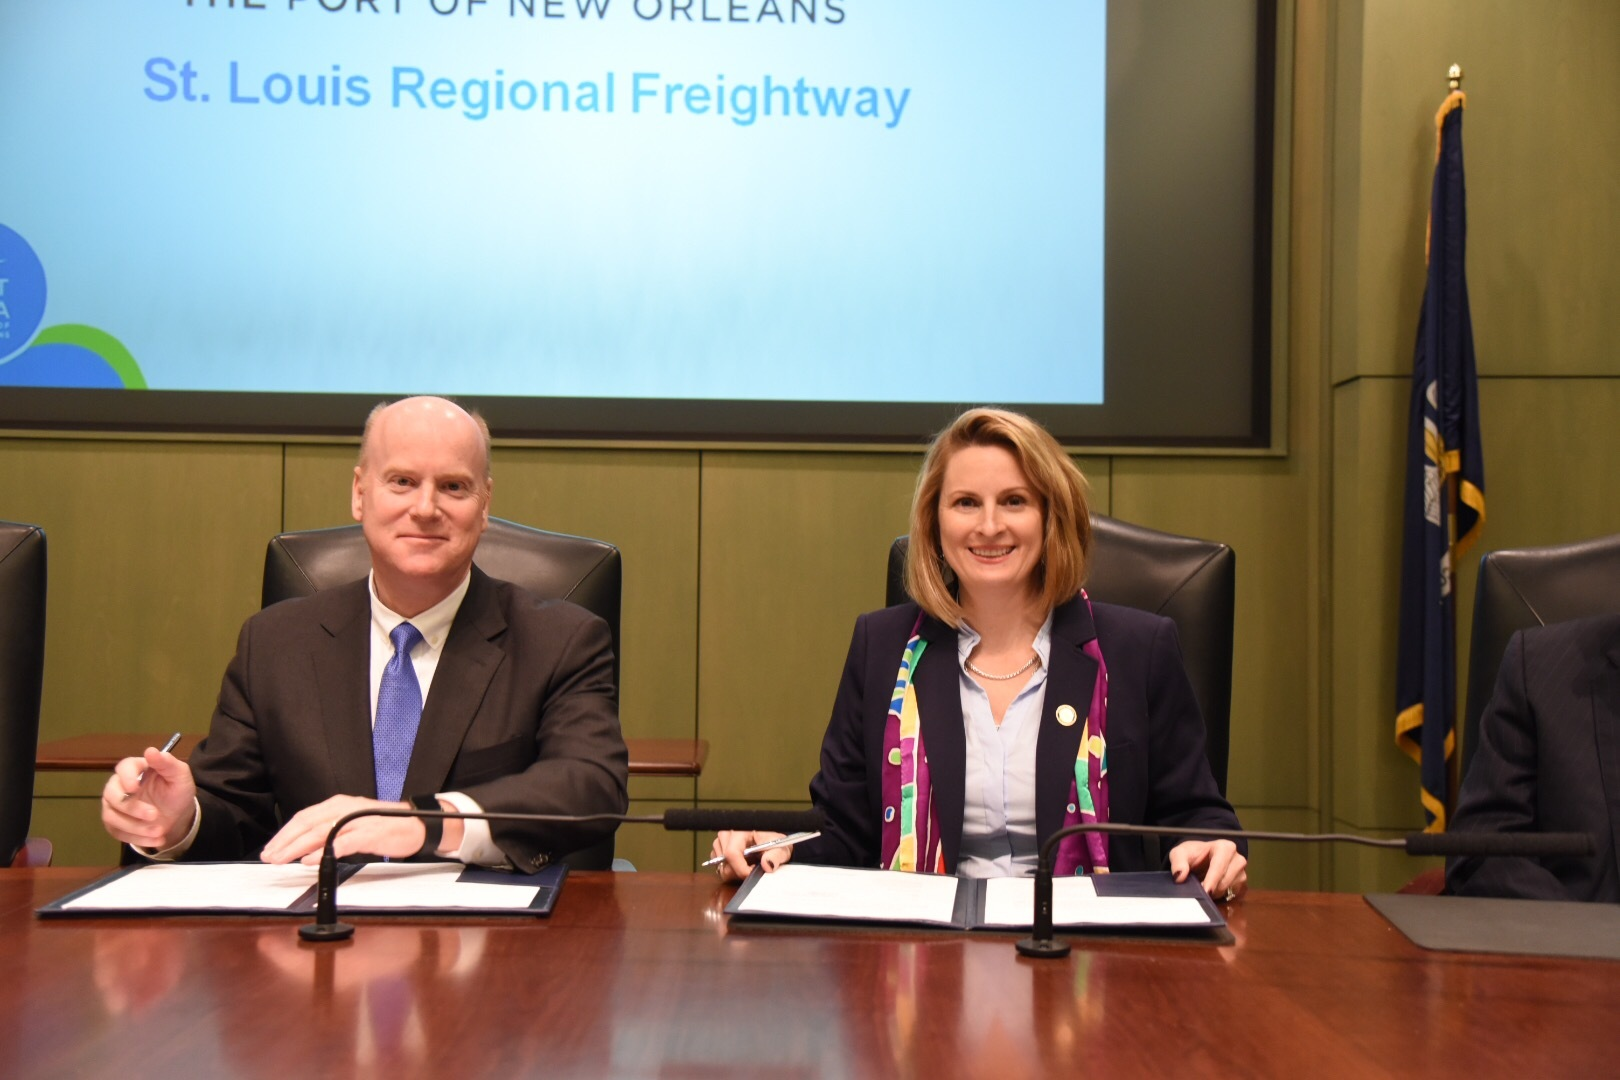 Press Release 2017 02 23 St  Louis Regional Freightway Img 4983